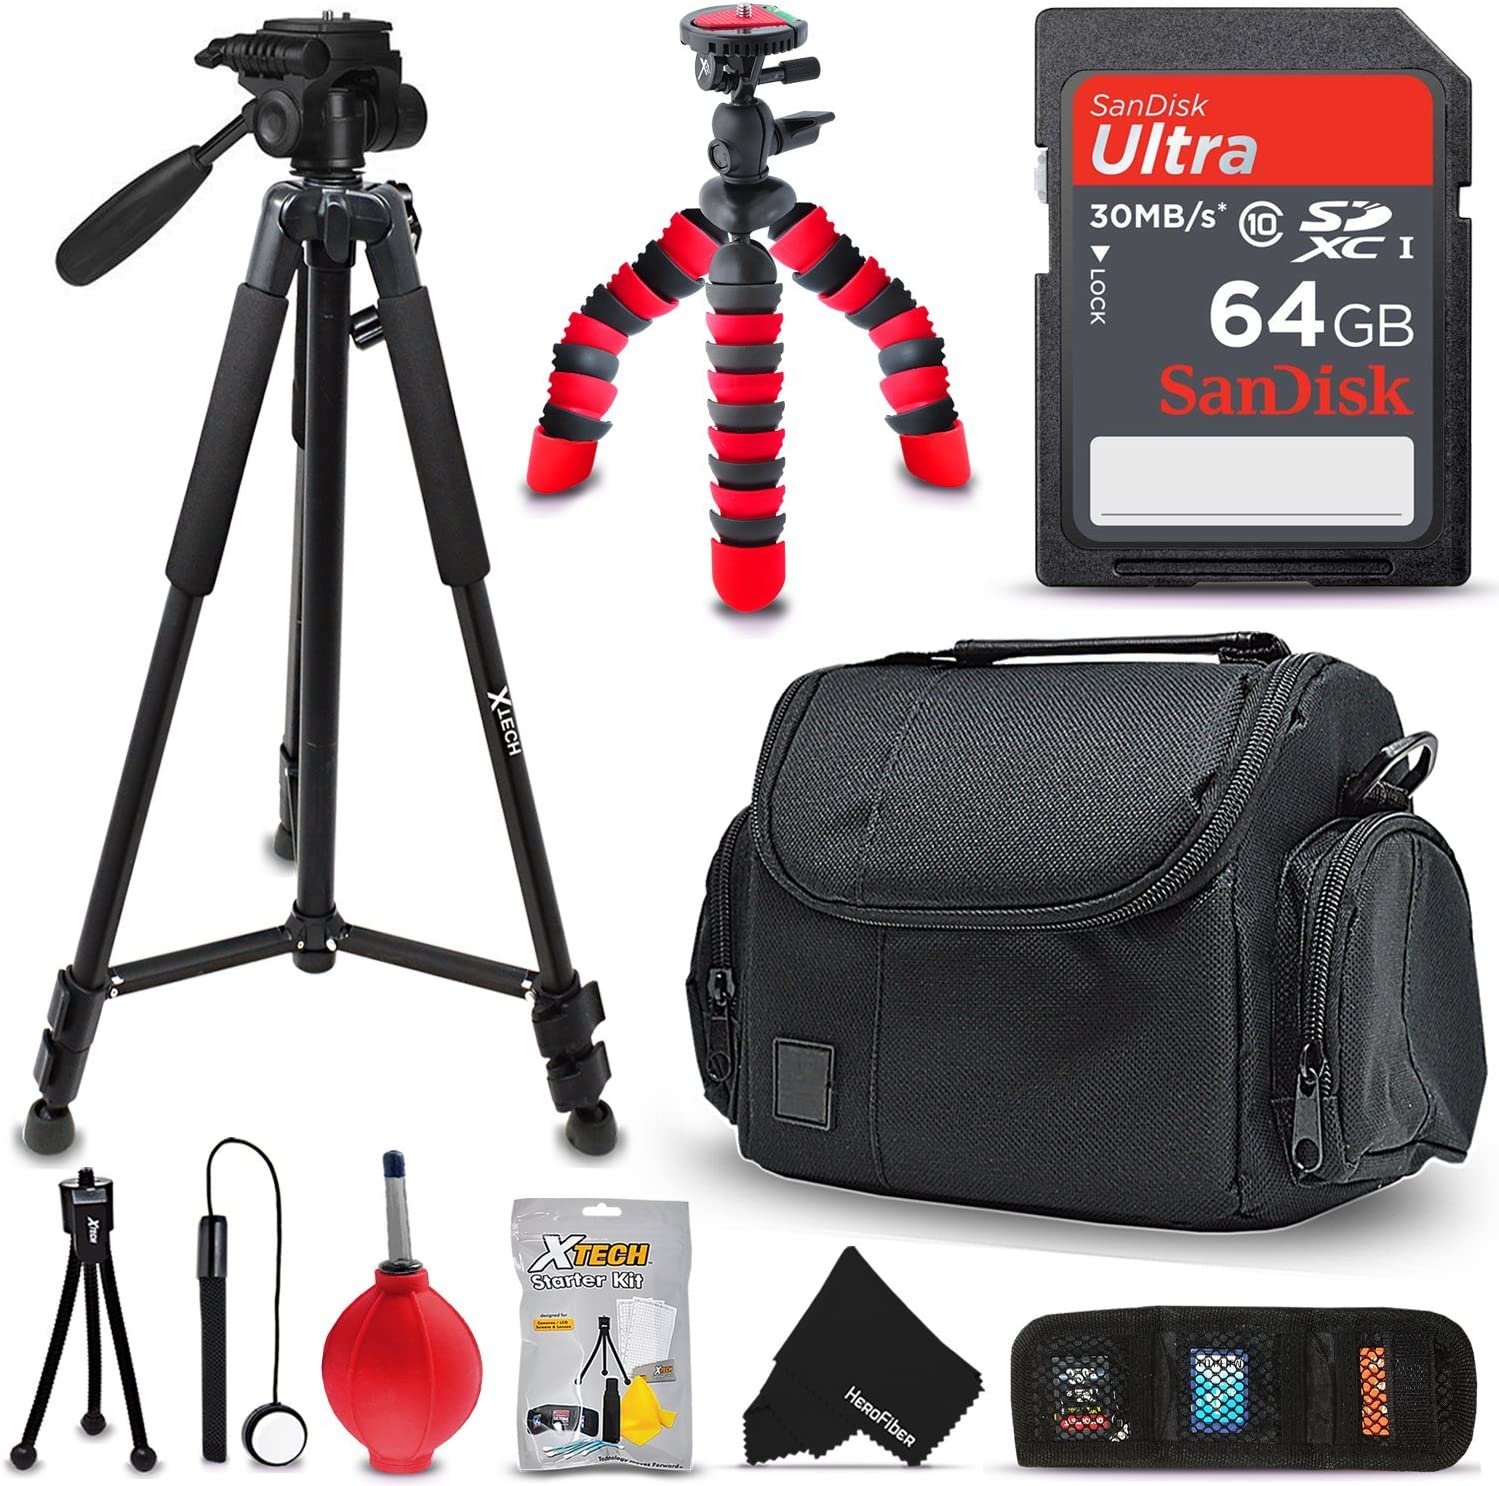 HeroFiber 60 Pro Series Lightweight Photo//Video Tripod /& Carrying Case for Sony Alpha A3000 Interchangeable Lens Digital Camera w Ultra Gentle Cleaning Cloth